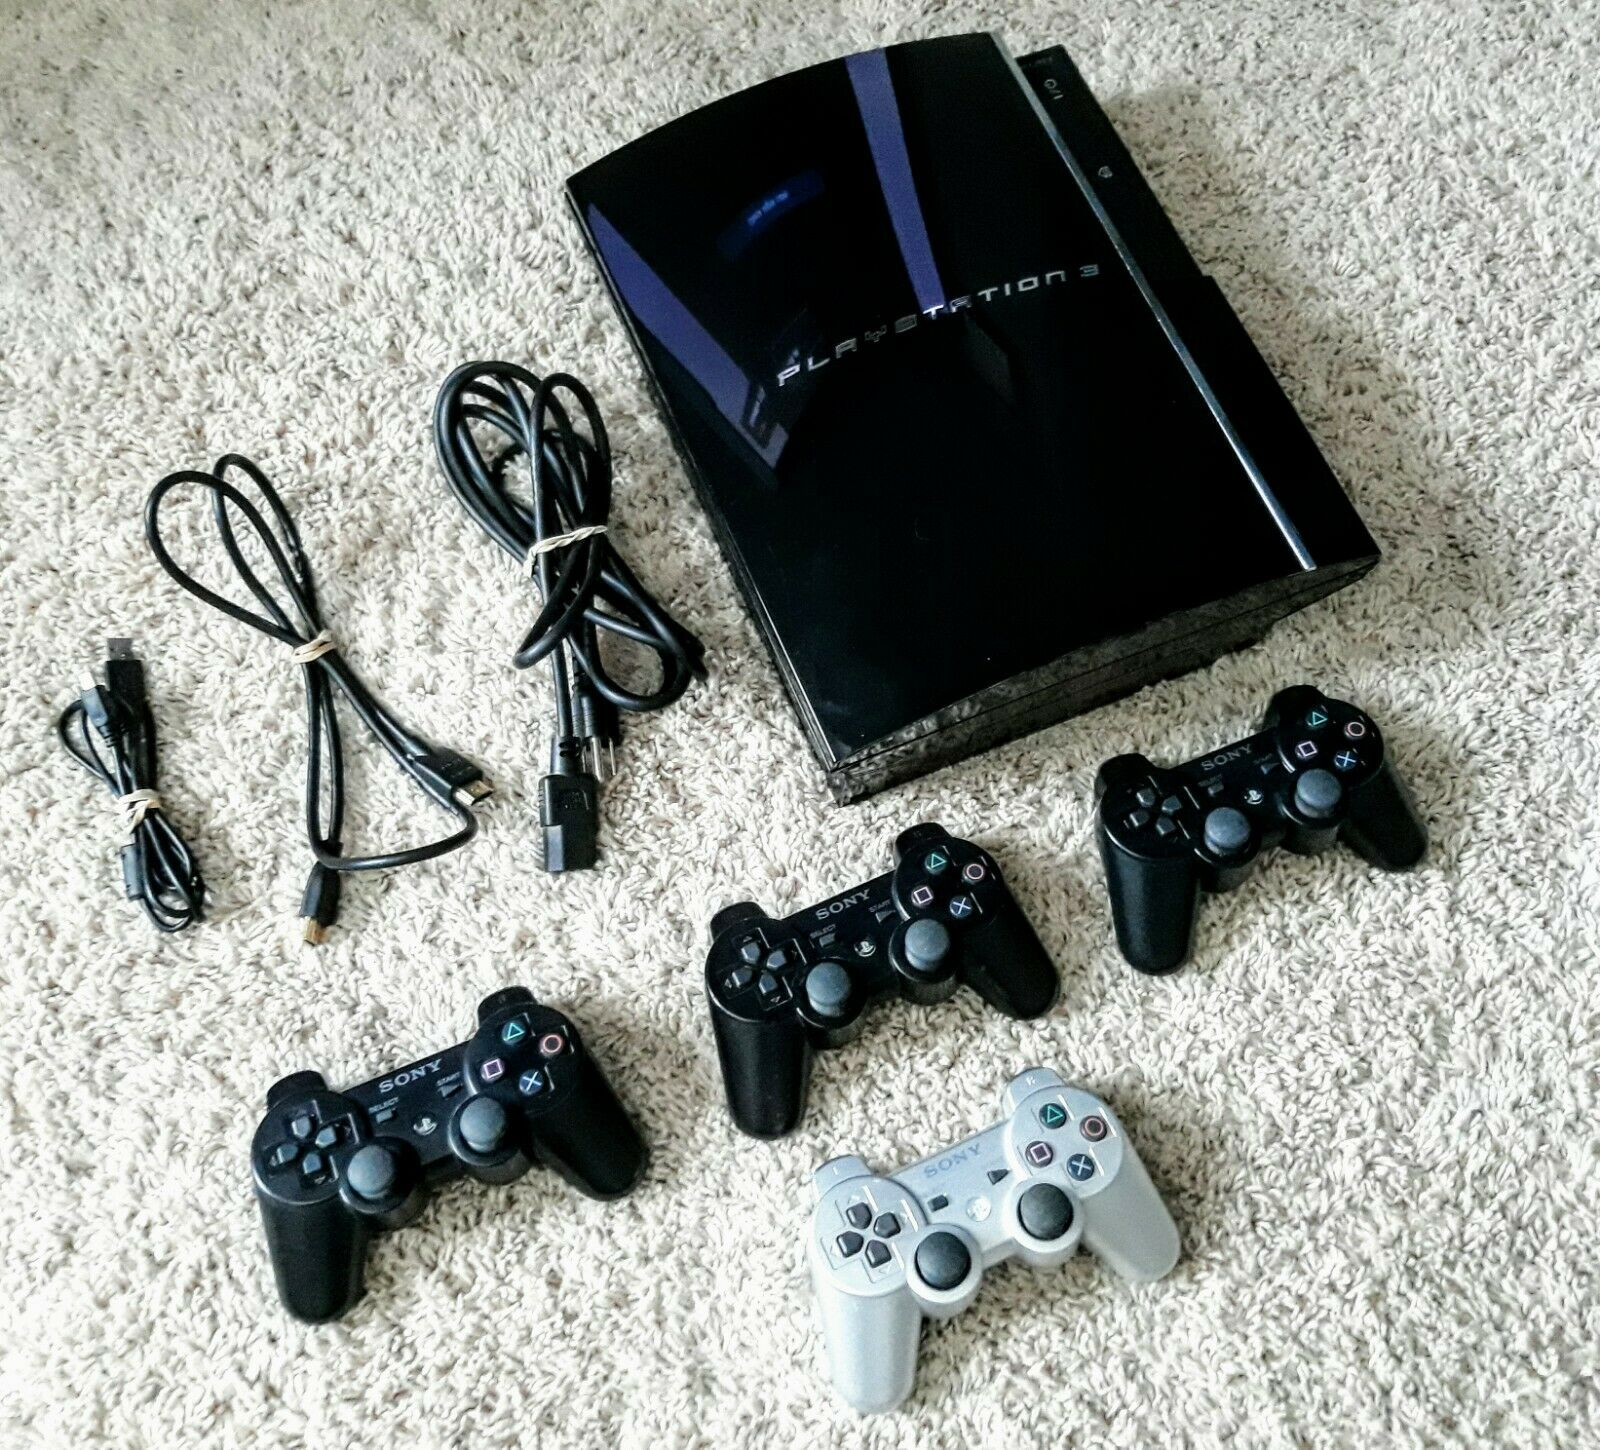 Sony PS3 Console CECHE01 FAT 80gb 4 Controllers w/ New Batteries Backwards Comp